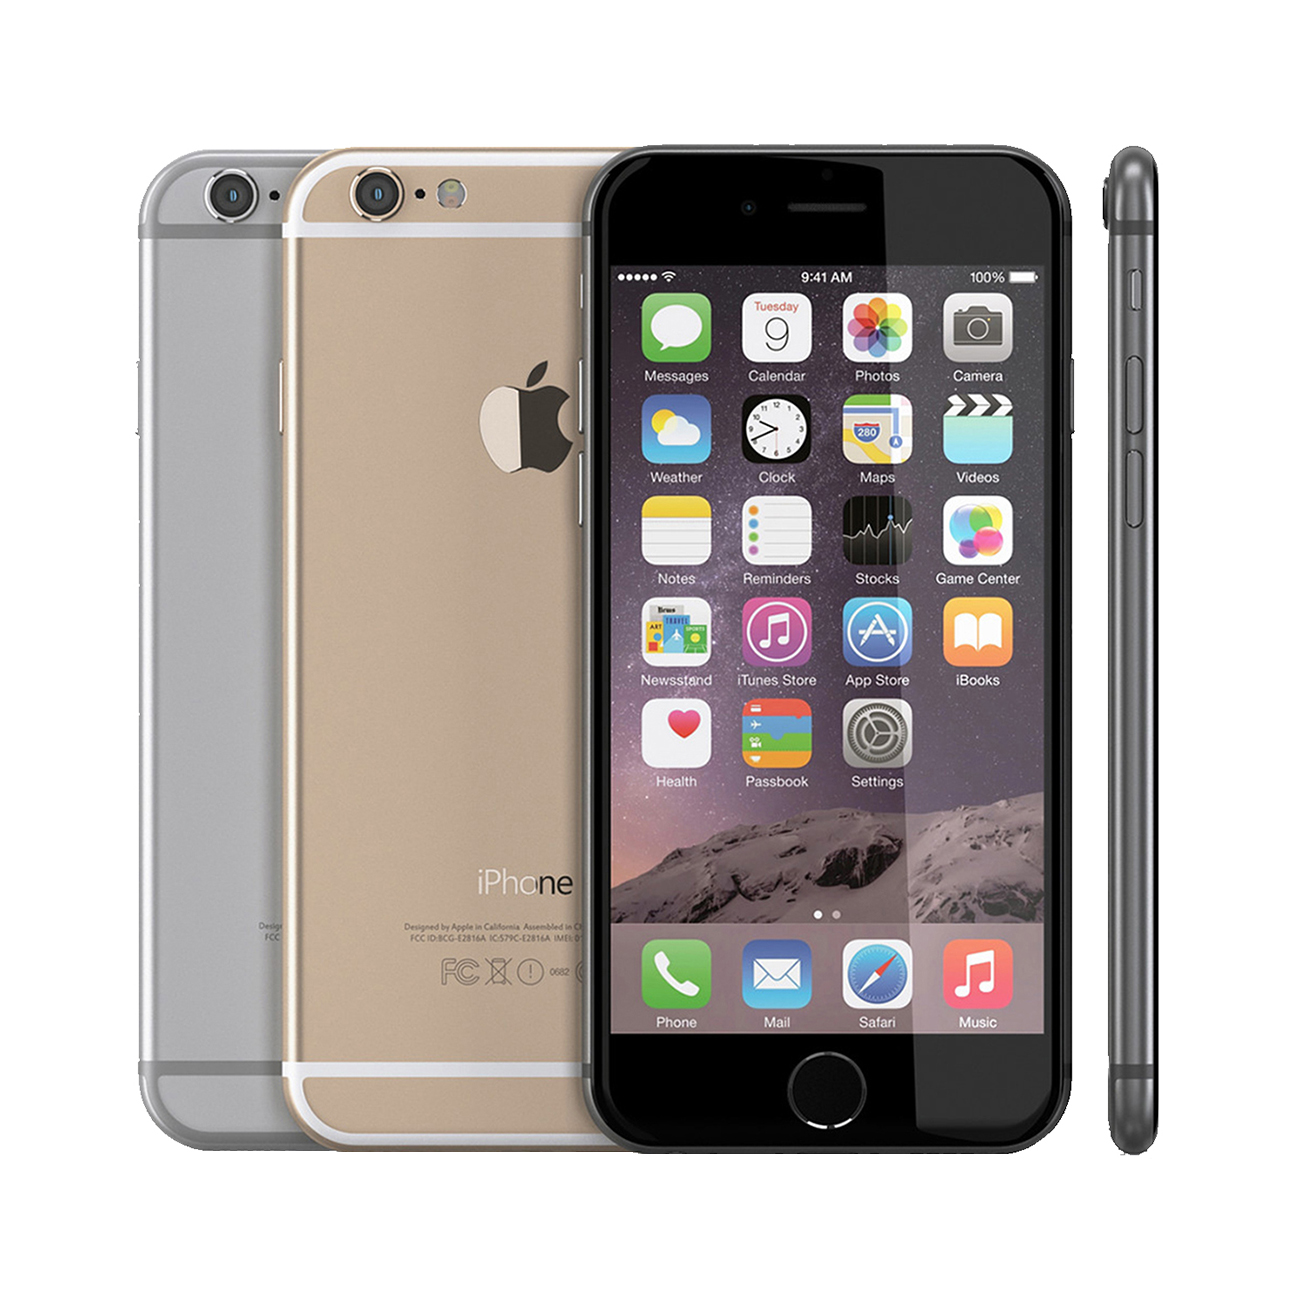 apple iphone 6 a1586 16 64 128gb silver gold space grey. Black Bedroom Furniture Sets. Home Design Ideas